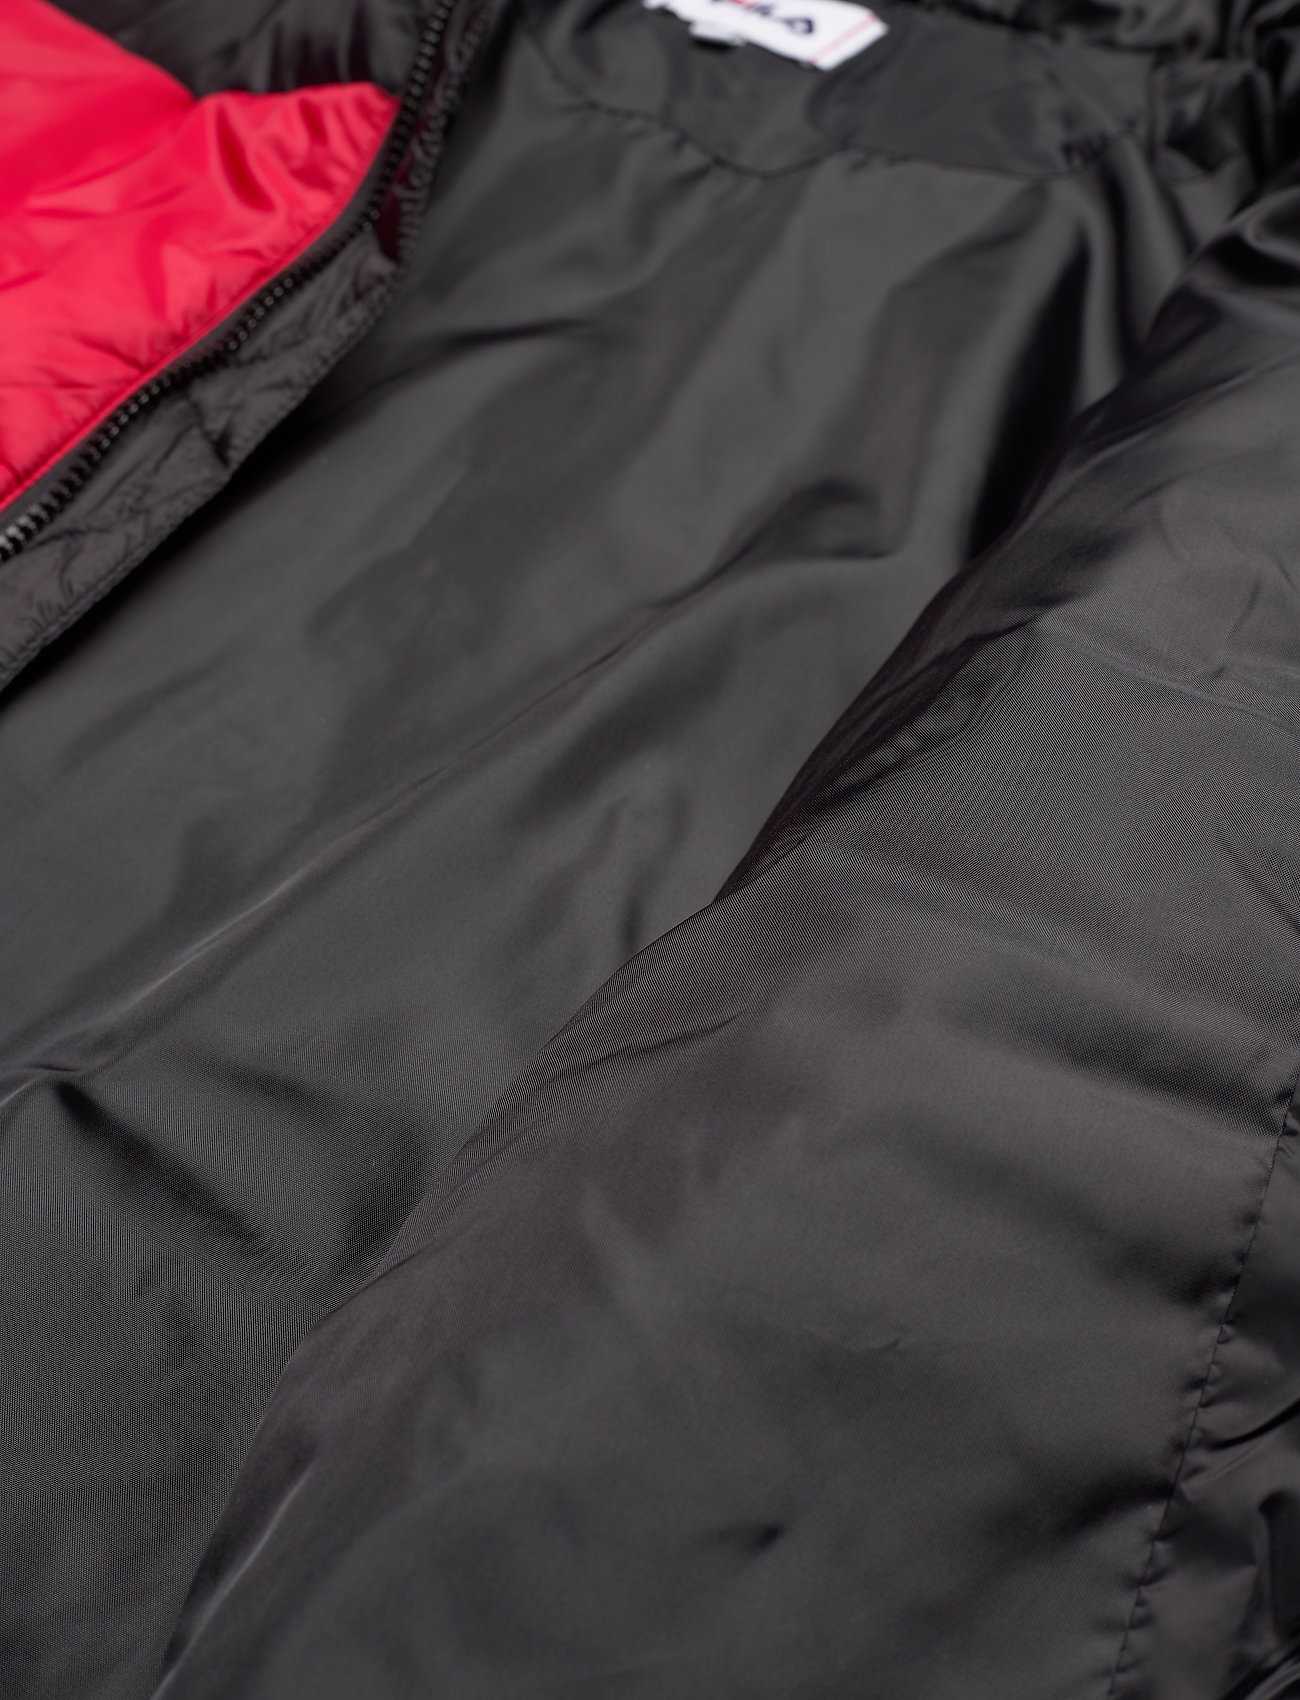 FILA MEN SCOOTER puffer jacket - Jakker og frakker BLACK-TRUE RED - Menn Klær